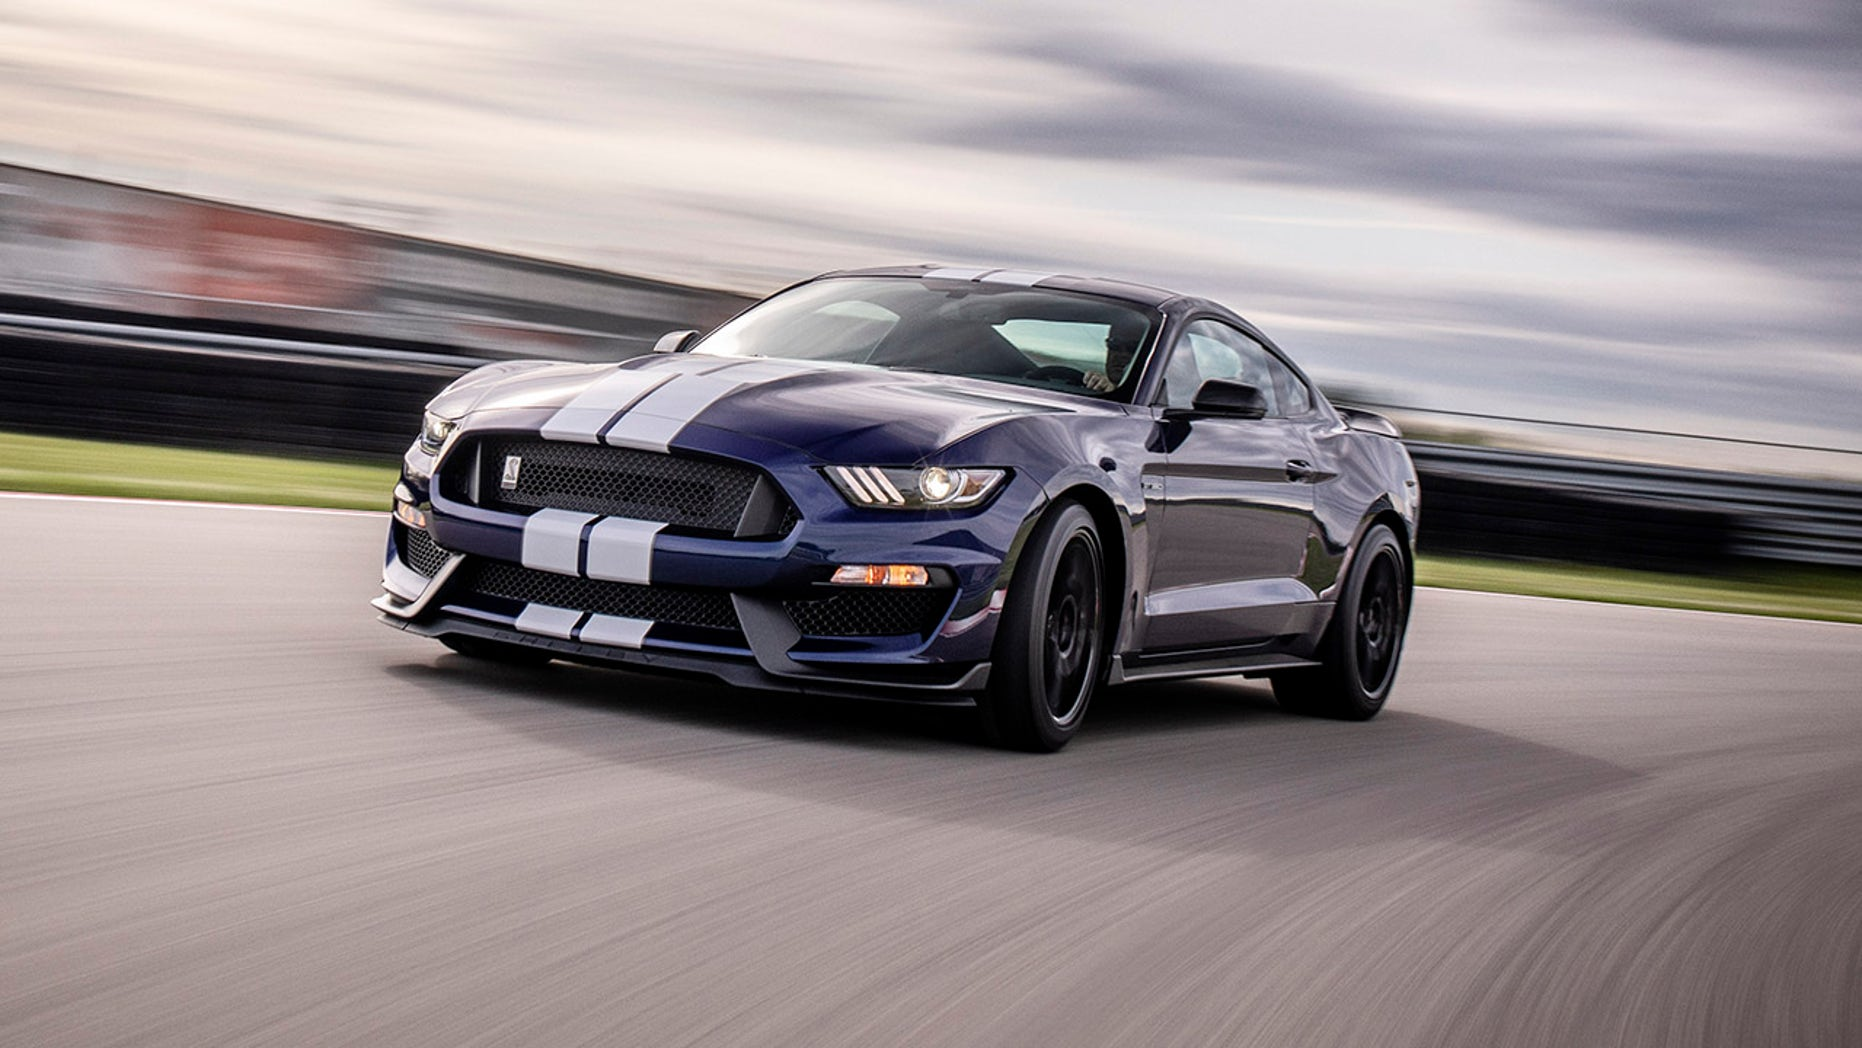 Not dead yet ford mustang shelby gt350 returning for 2019 fox news